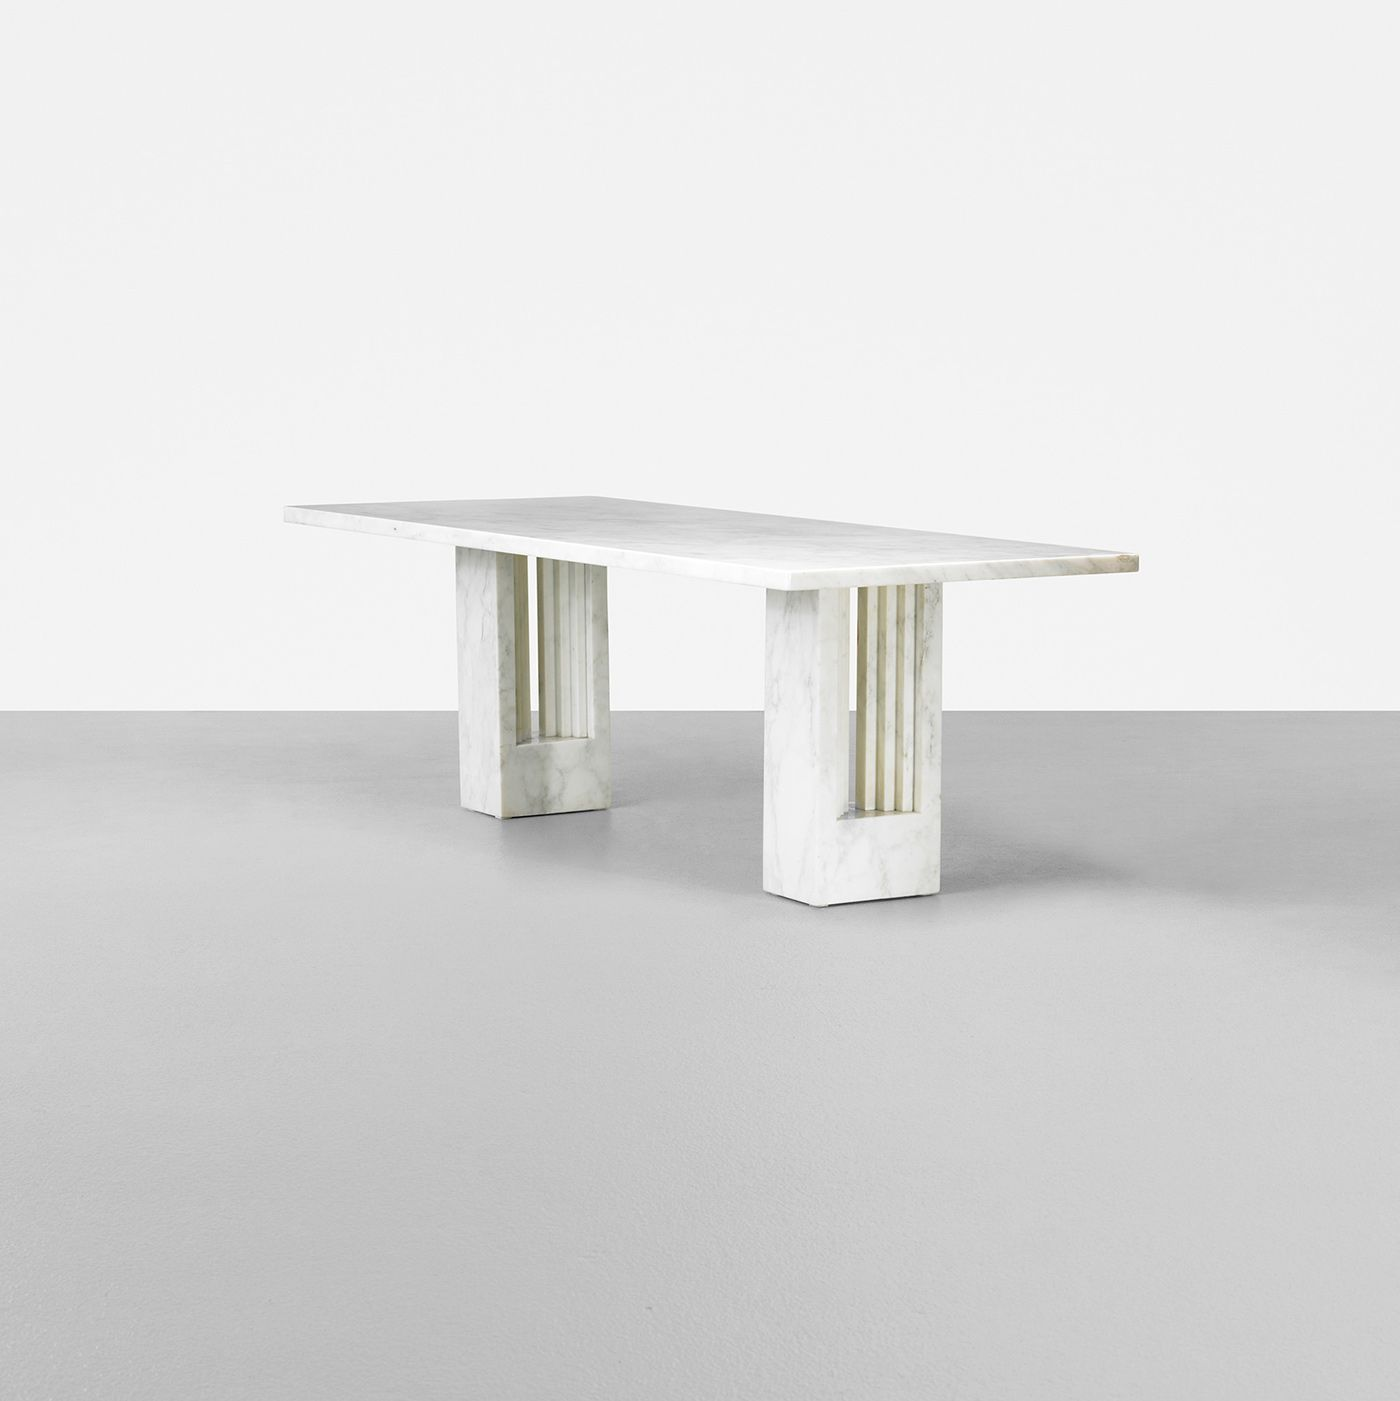 Marcel breuer and carlo scarpa marble delfi dining table for marcel breuer and carlo scarpa marble delfi dining table for simon gavina geotapseo Choice Image